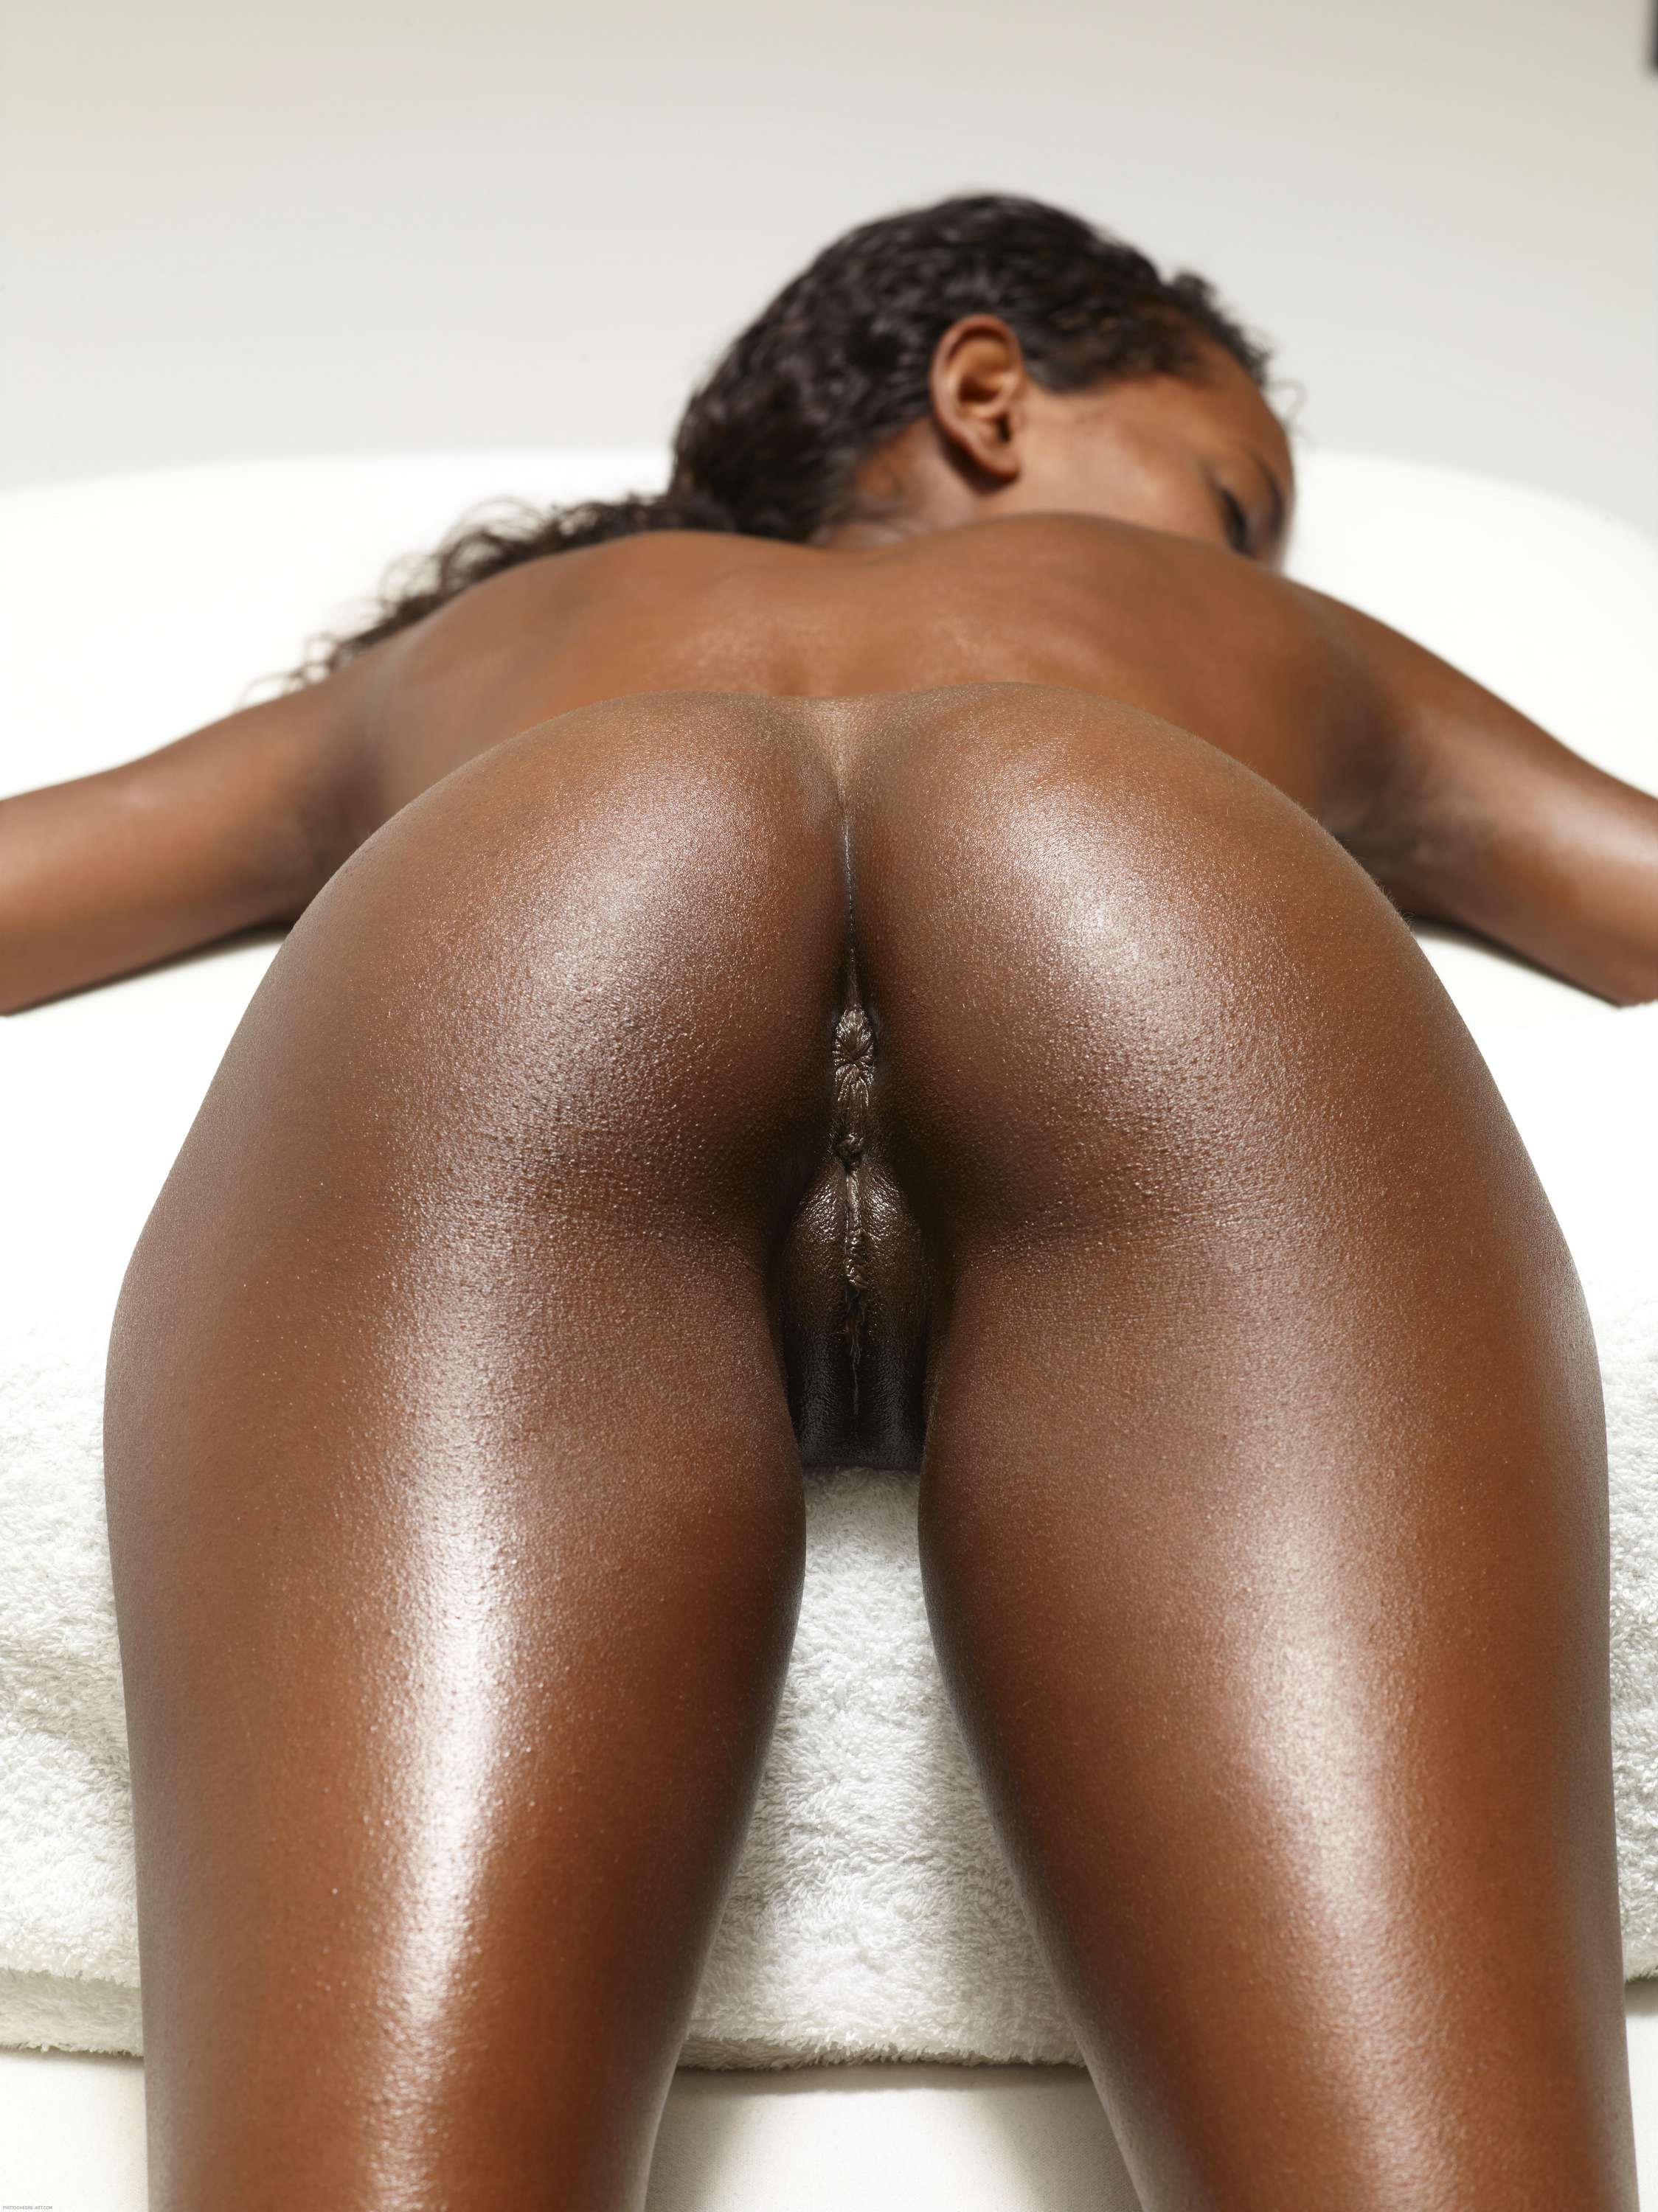 The excellent beautiful nigerian women open pussy